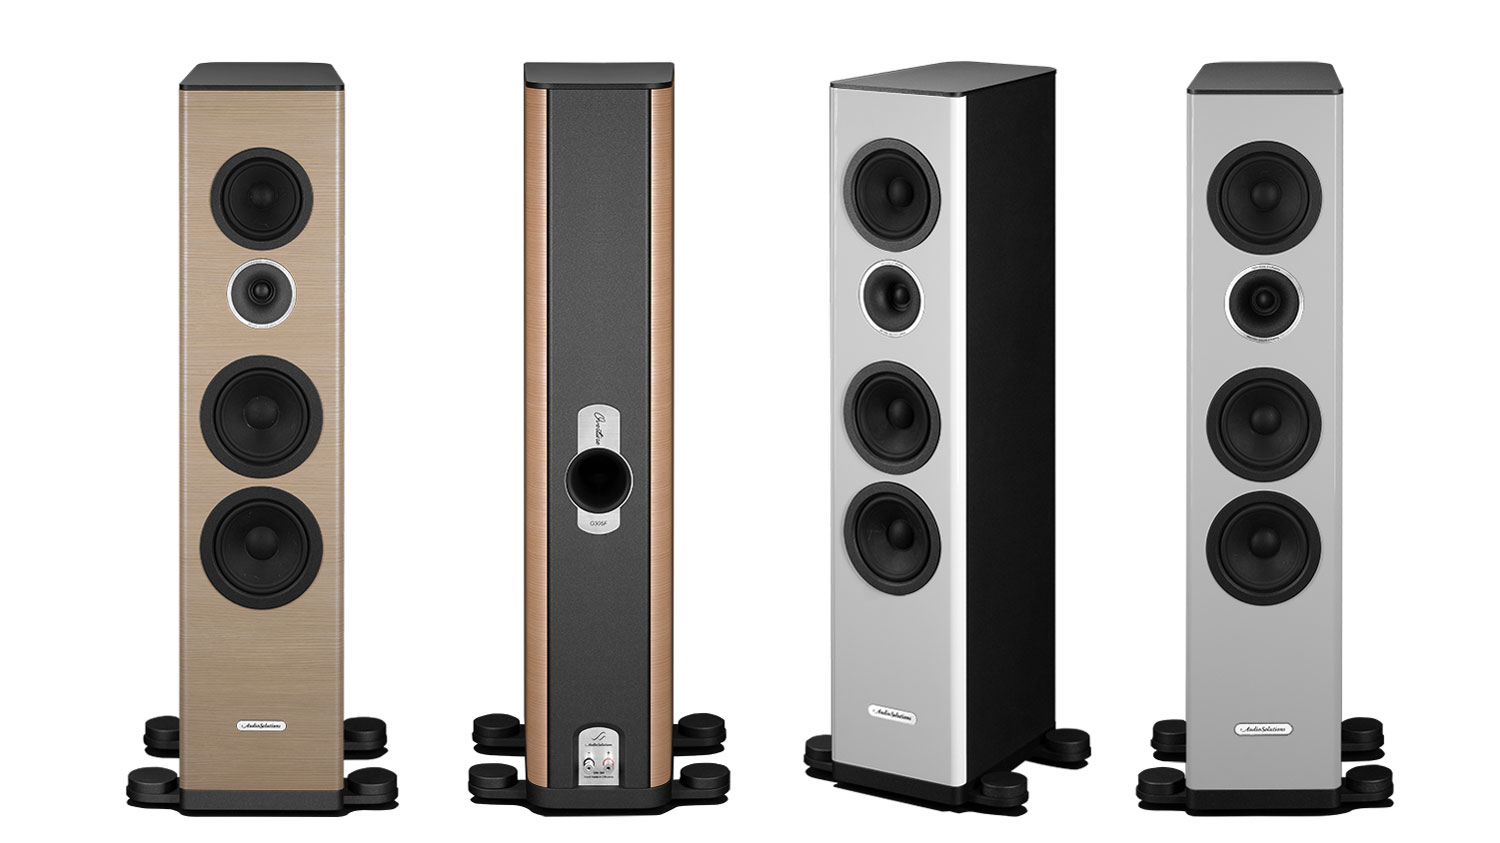 AudioSolutions Overture mk3 (Image Credit: AudioSolutions)